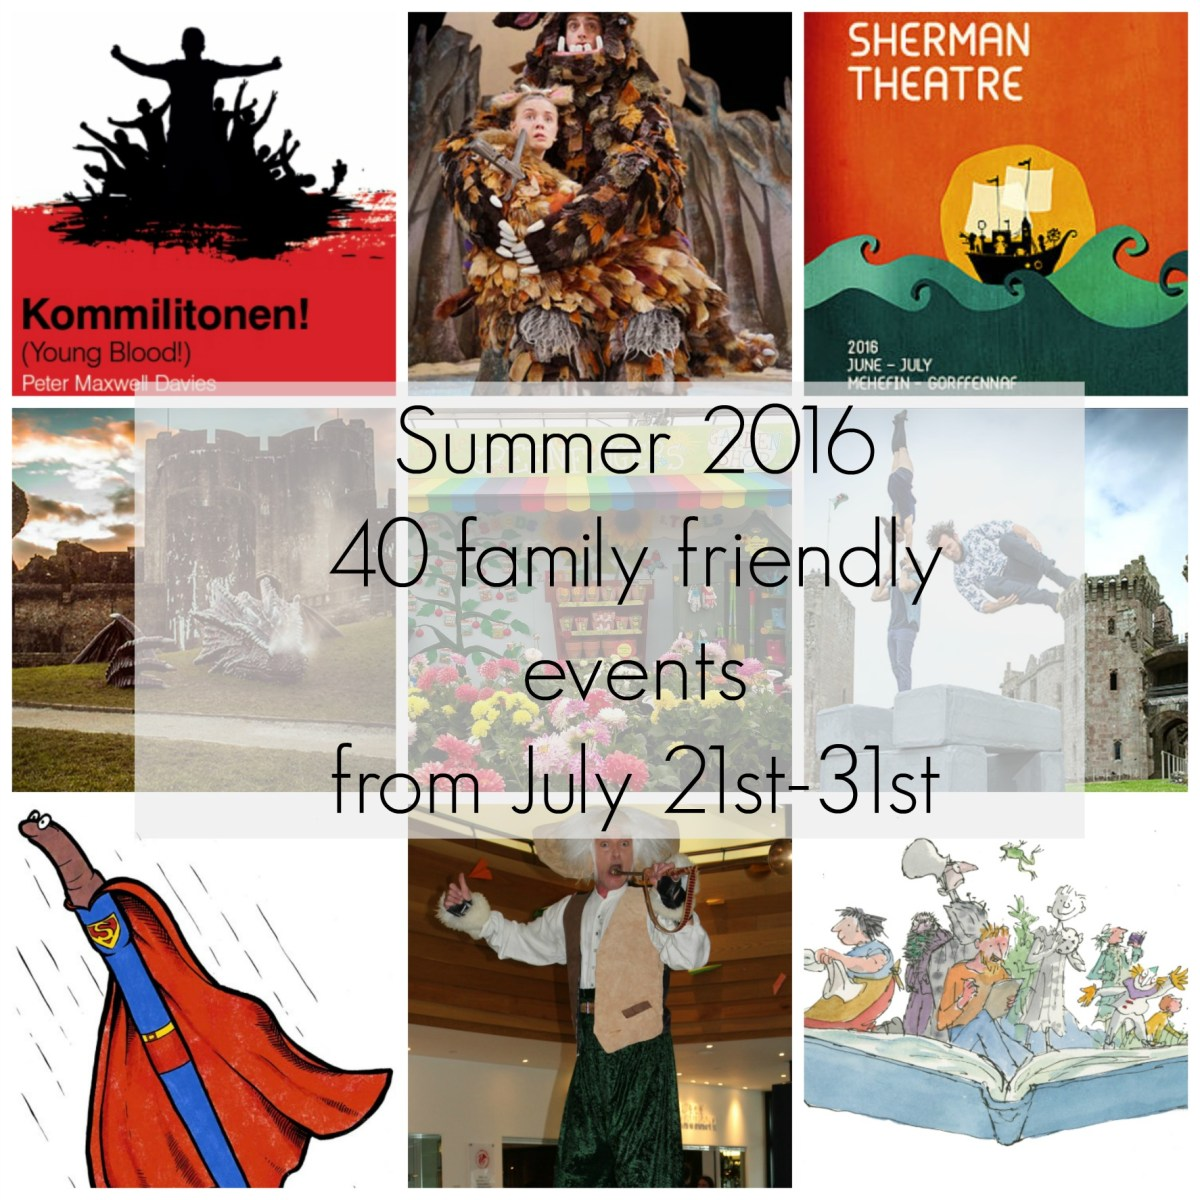 Summer 2016 - 40 family friendly events July 21st-31st